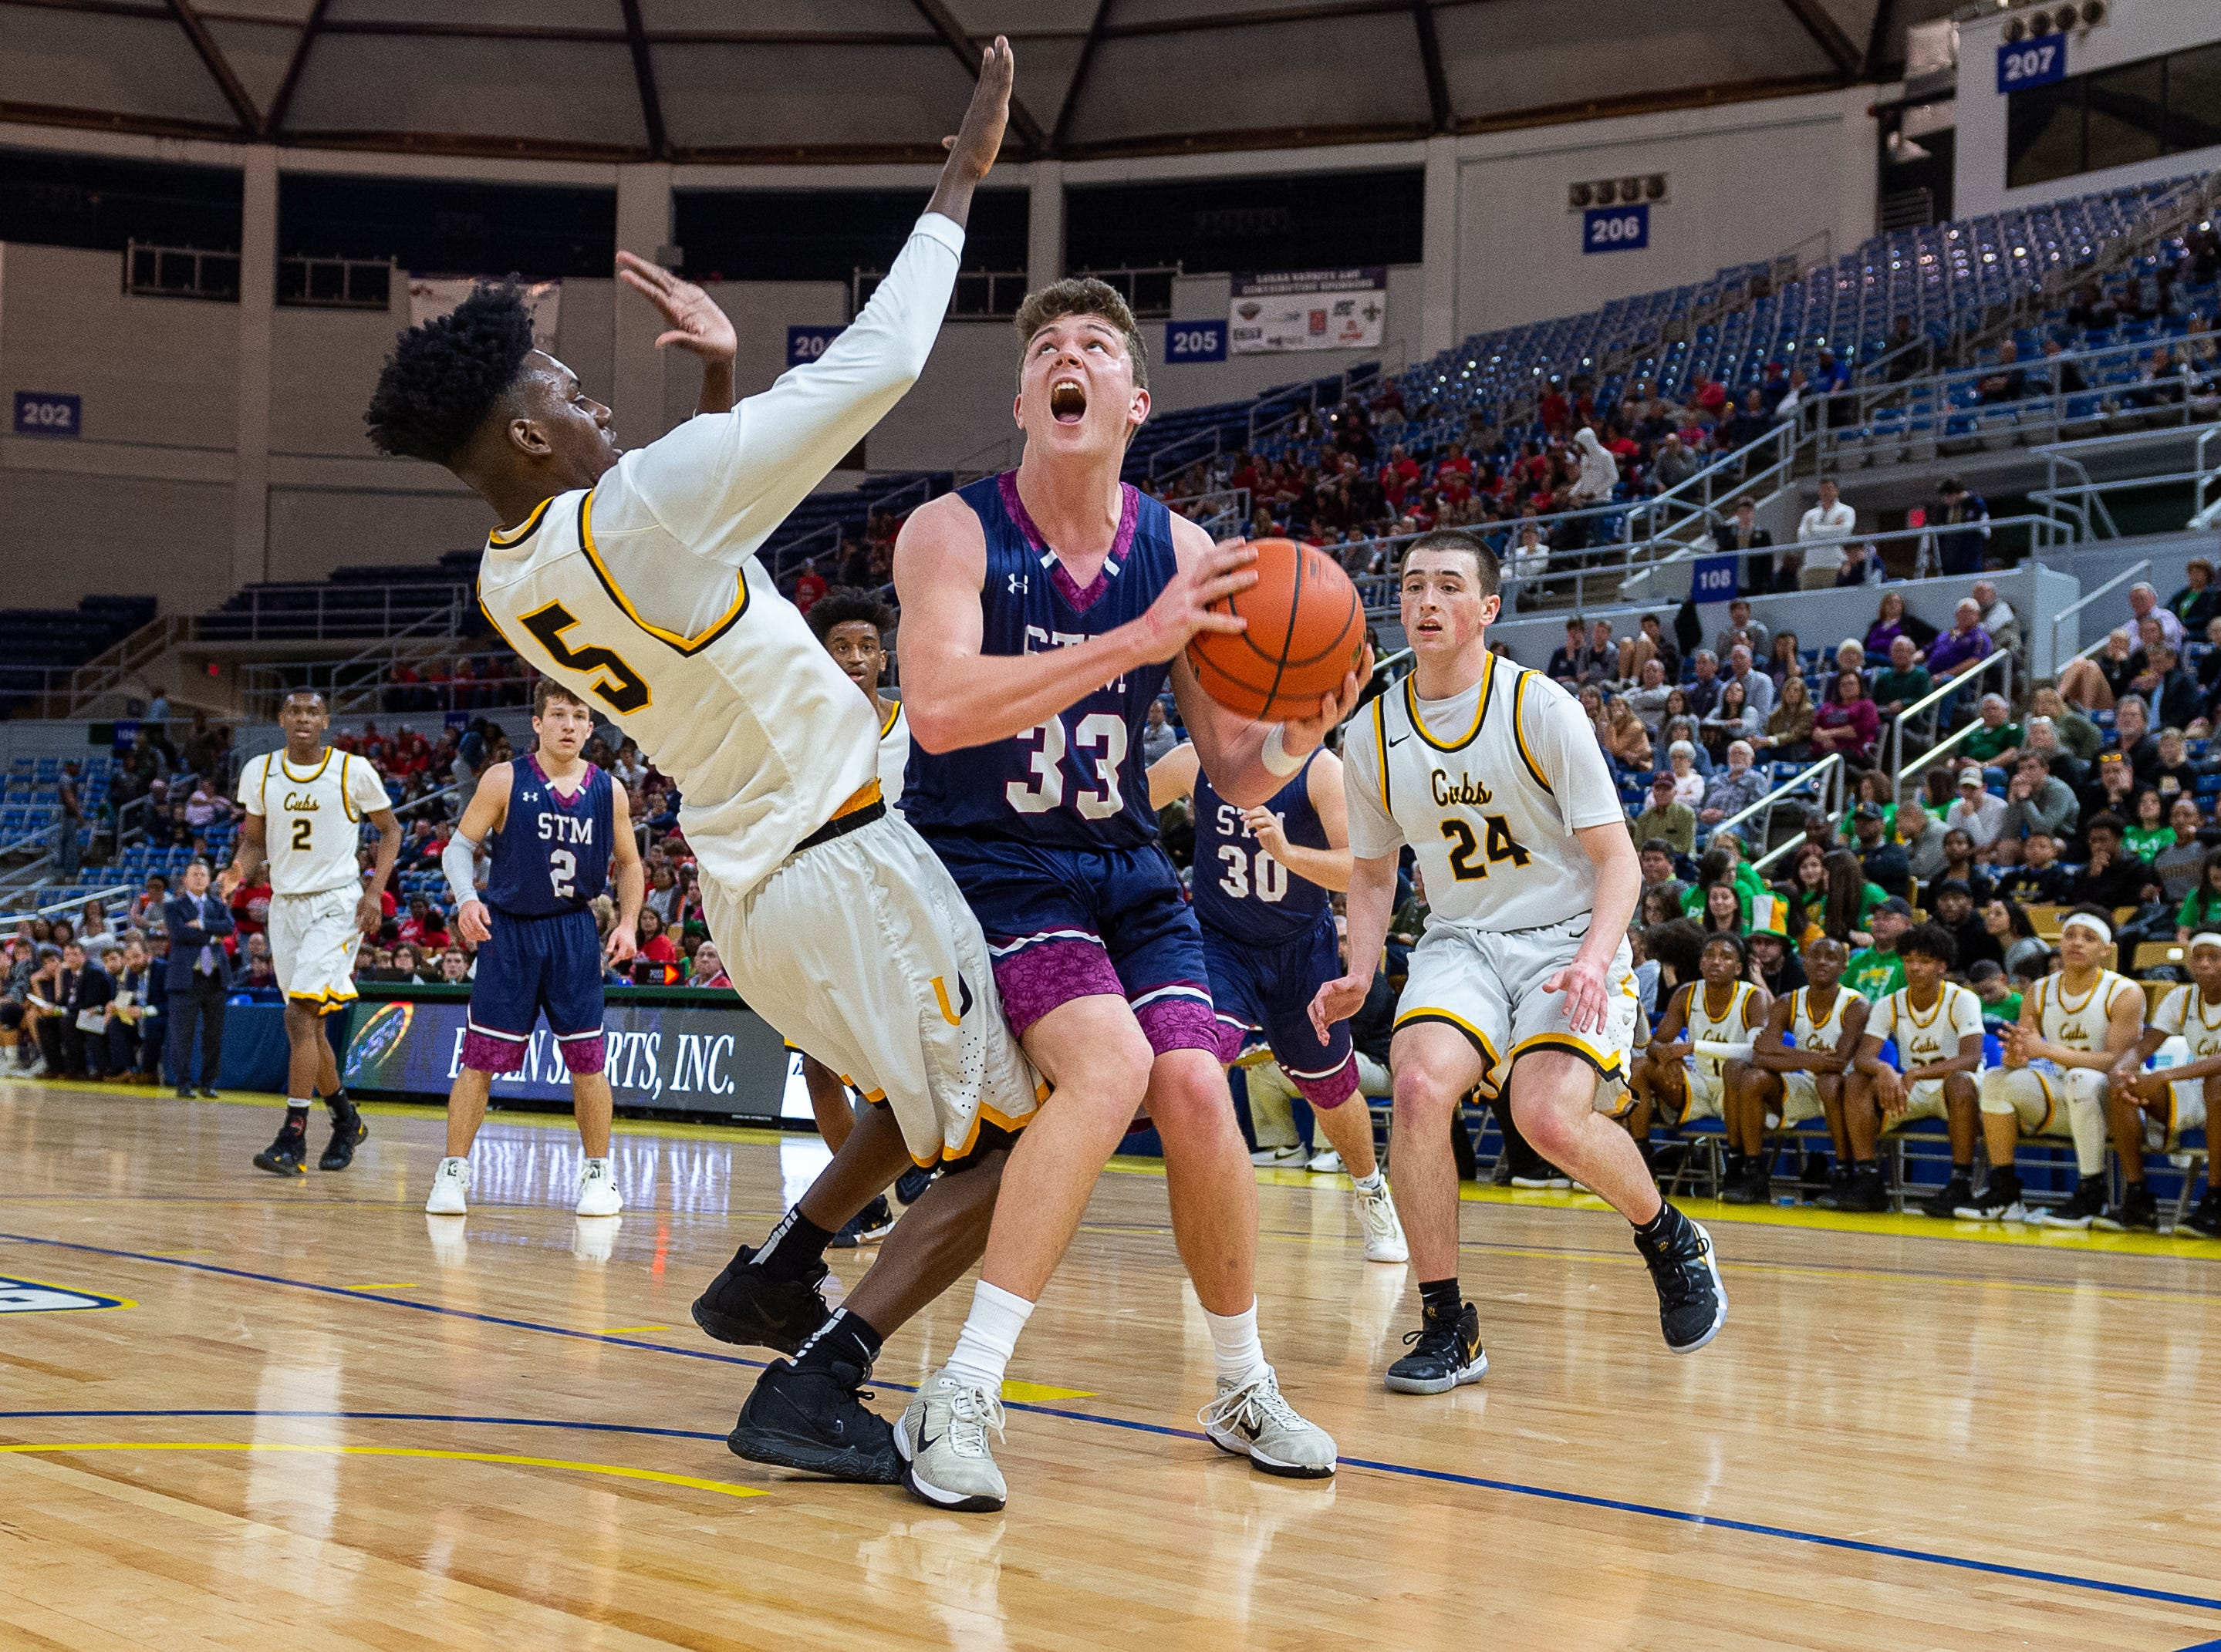 Caleb Holstein looks to shoot as STM takes down University High in the semi final round of the LHSAA Basketball State Championships. Wednesday, March 6, 2019.